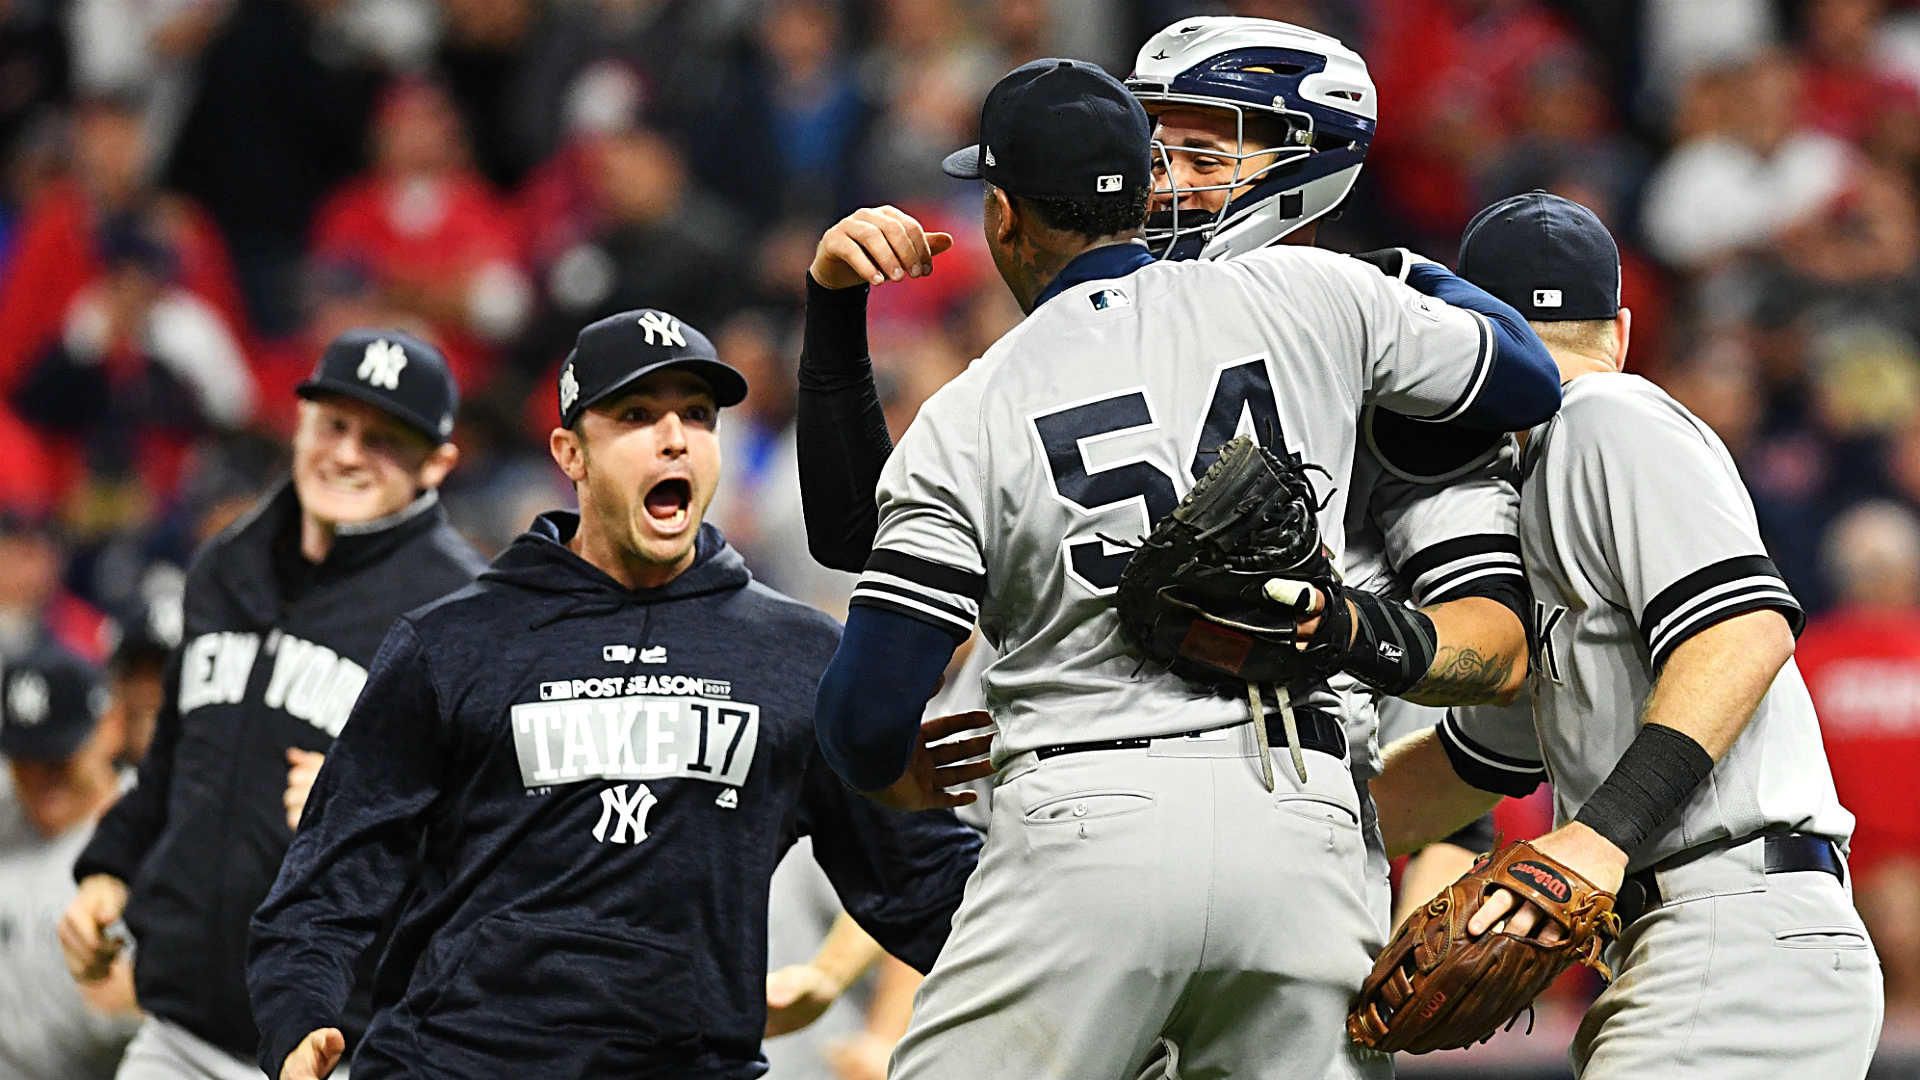 Yankees vs. Indians: Score, highlights from Bombers' ALDS ...Yankees